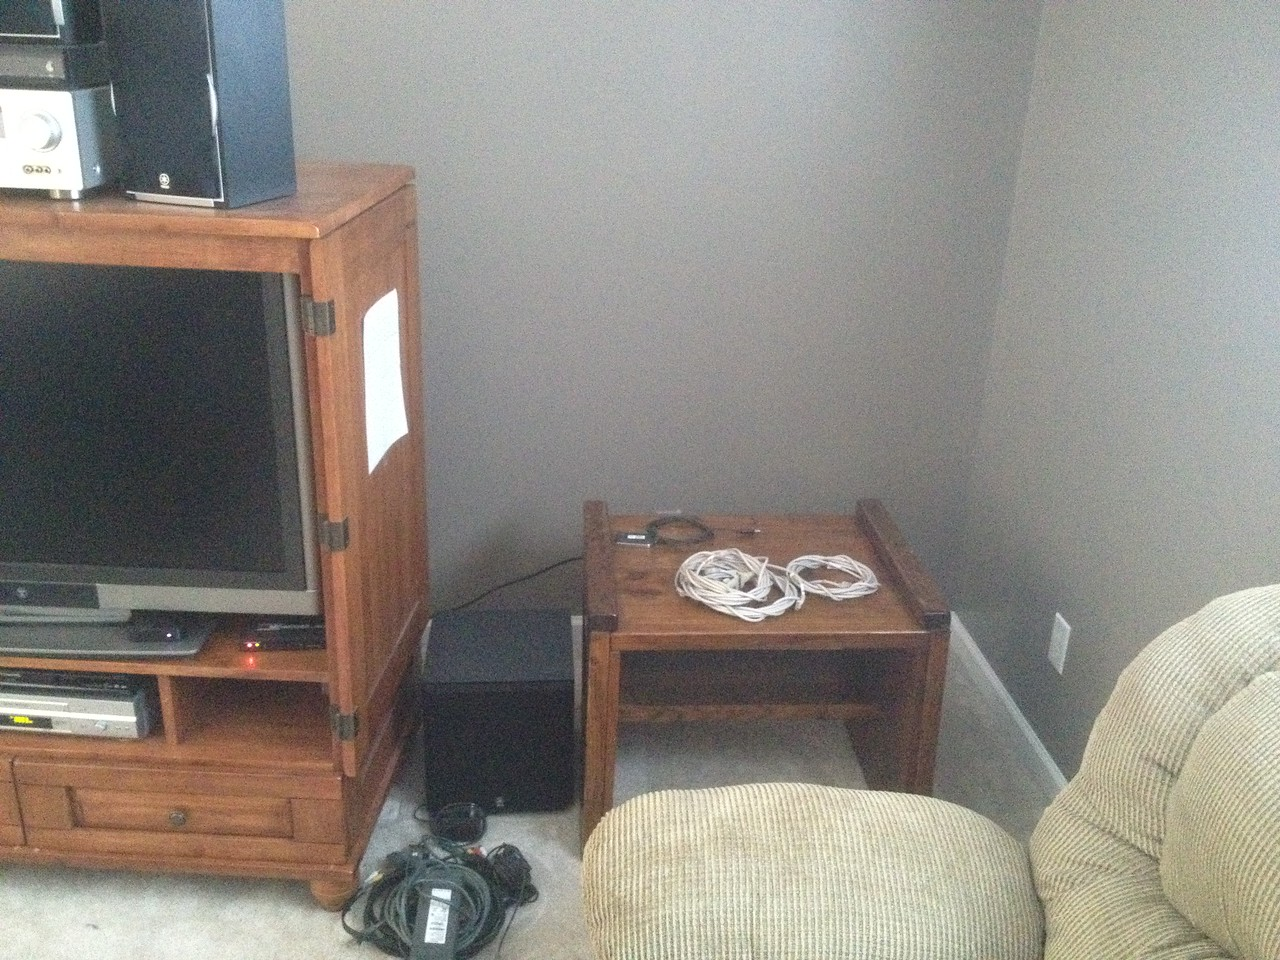 Considering how to get a cable up to the upstairs TV